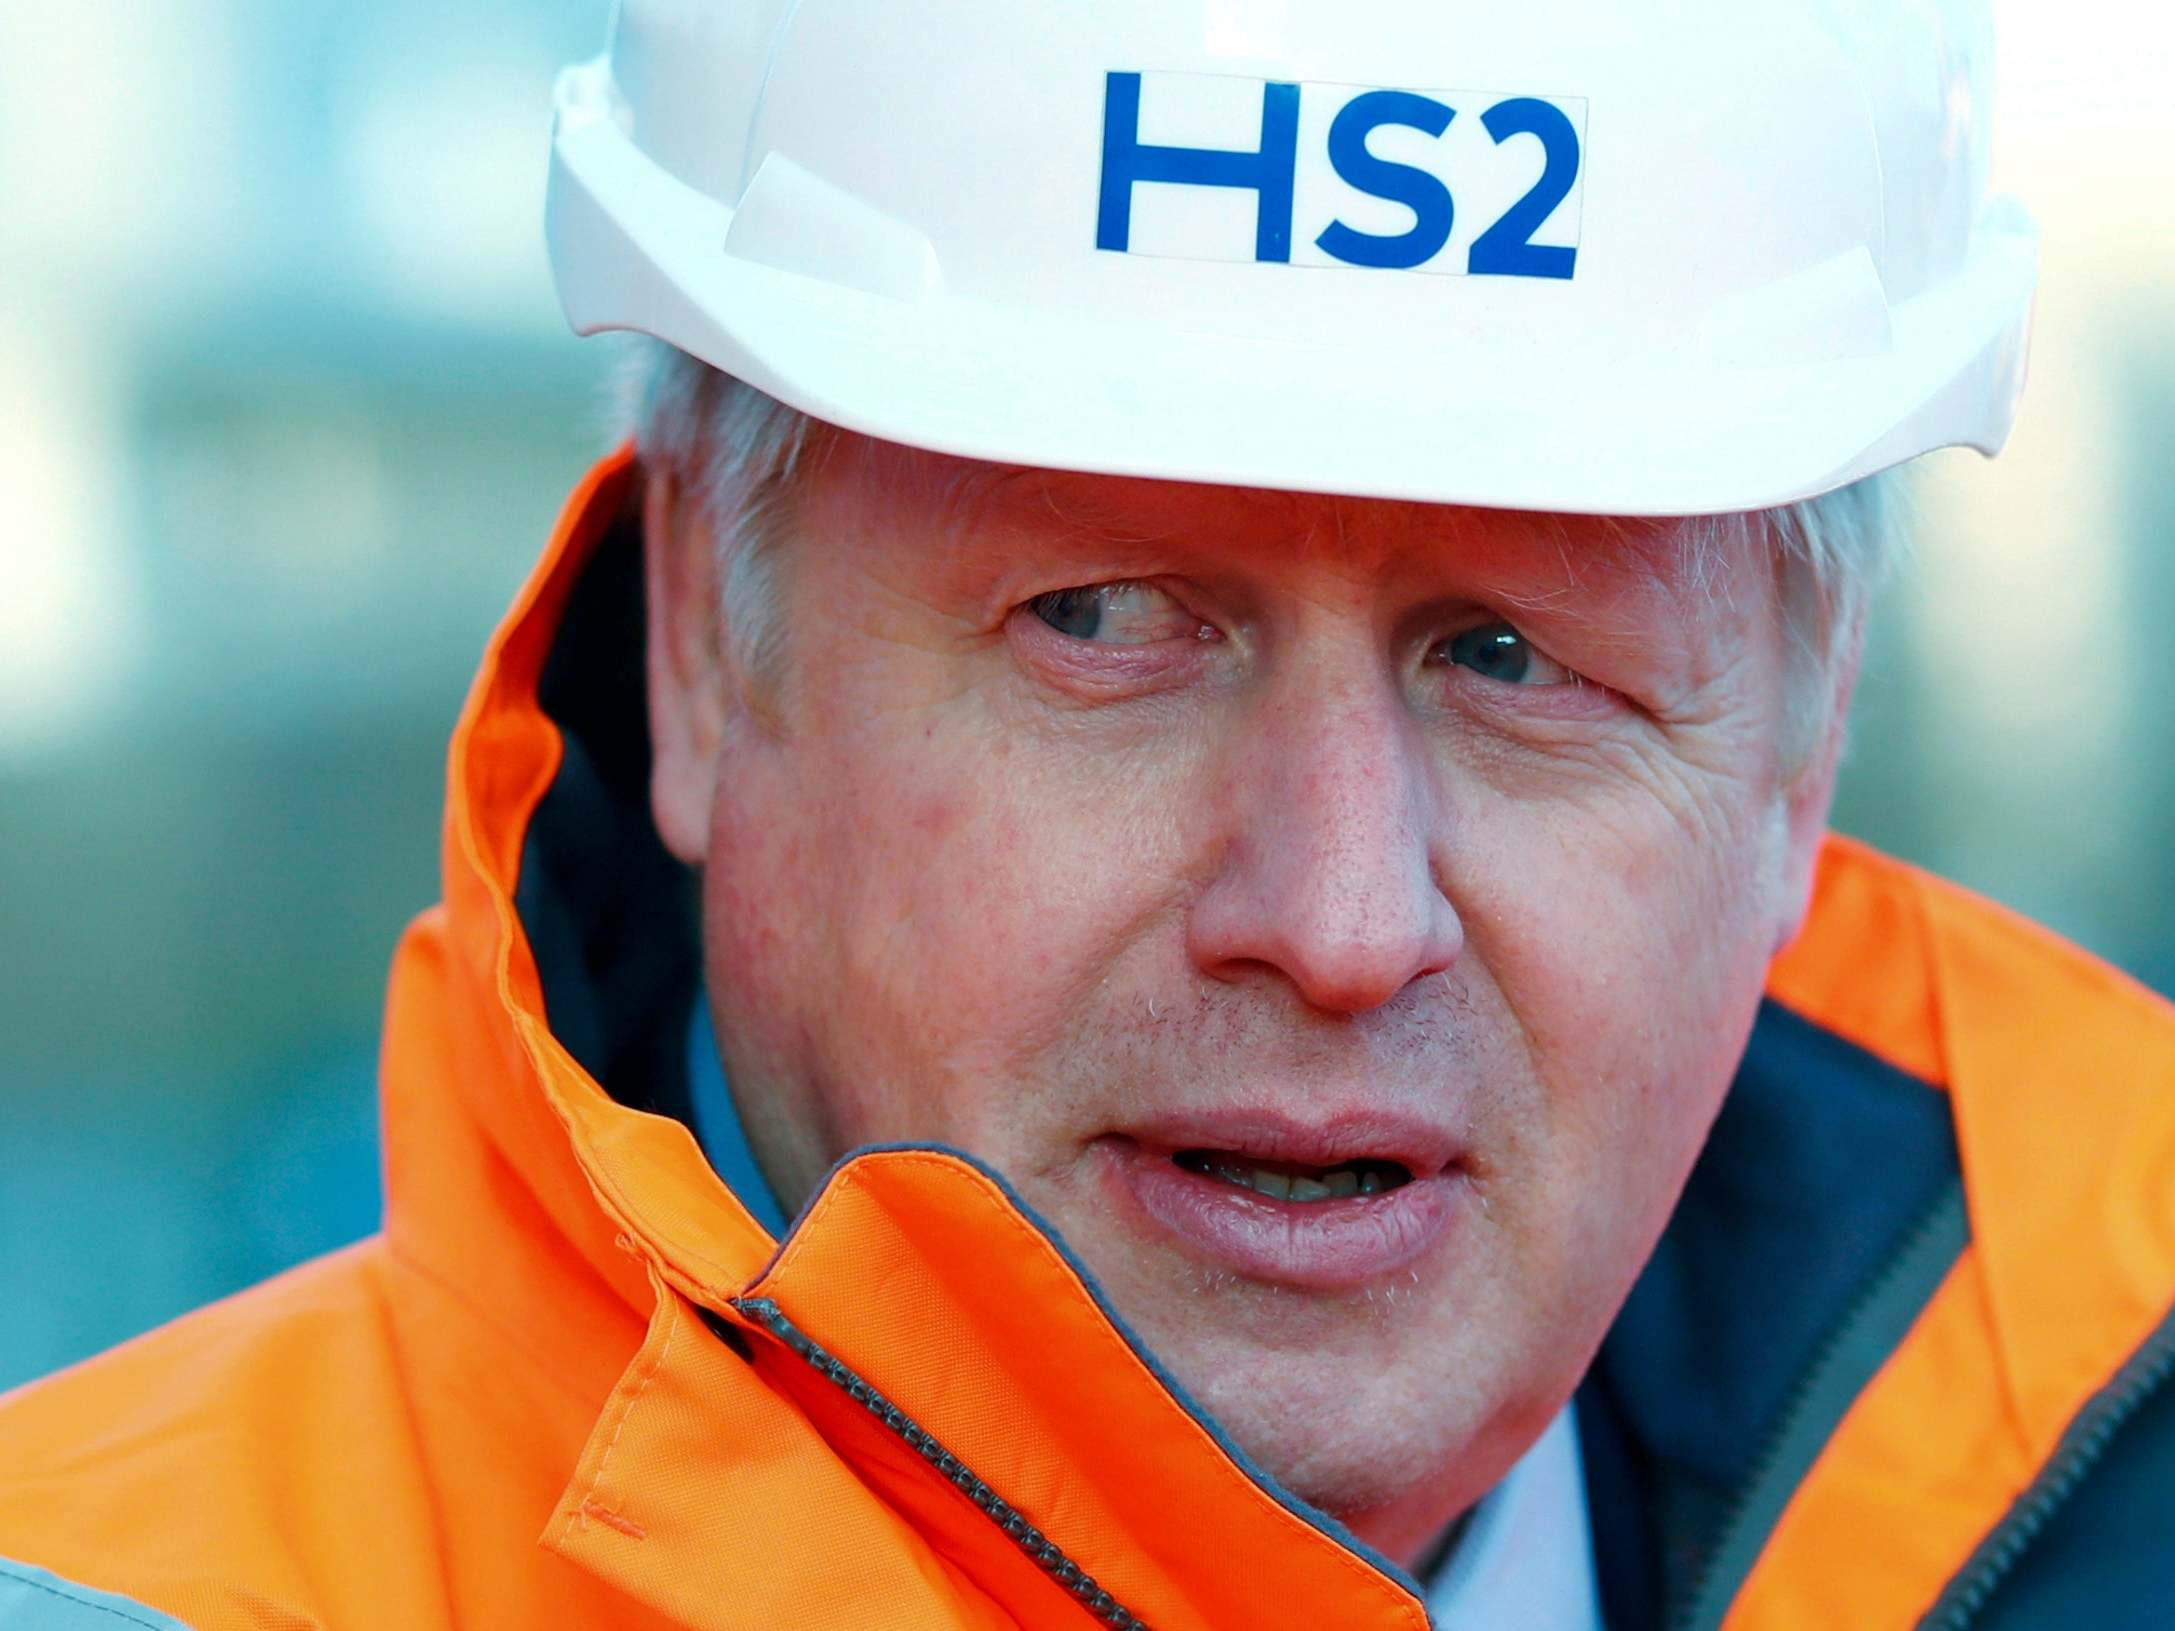 Opinion: Without migrant workers, there will be no homebuilding or HS2